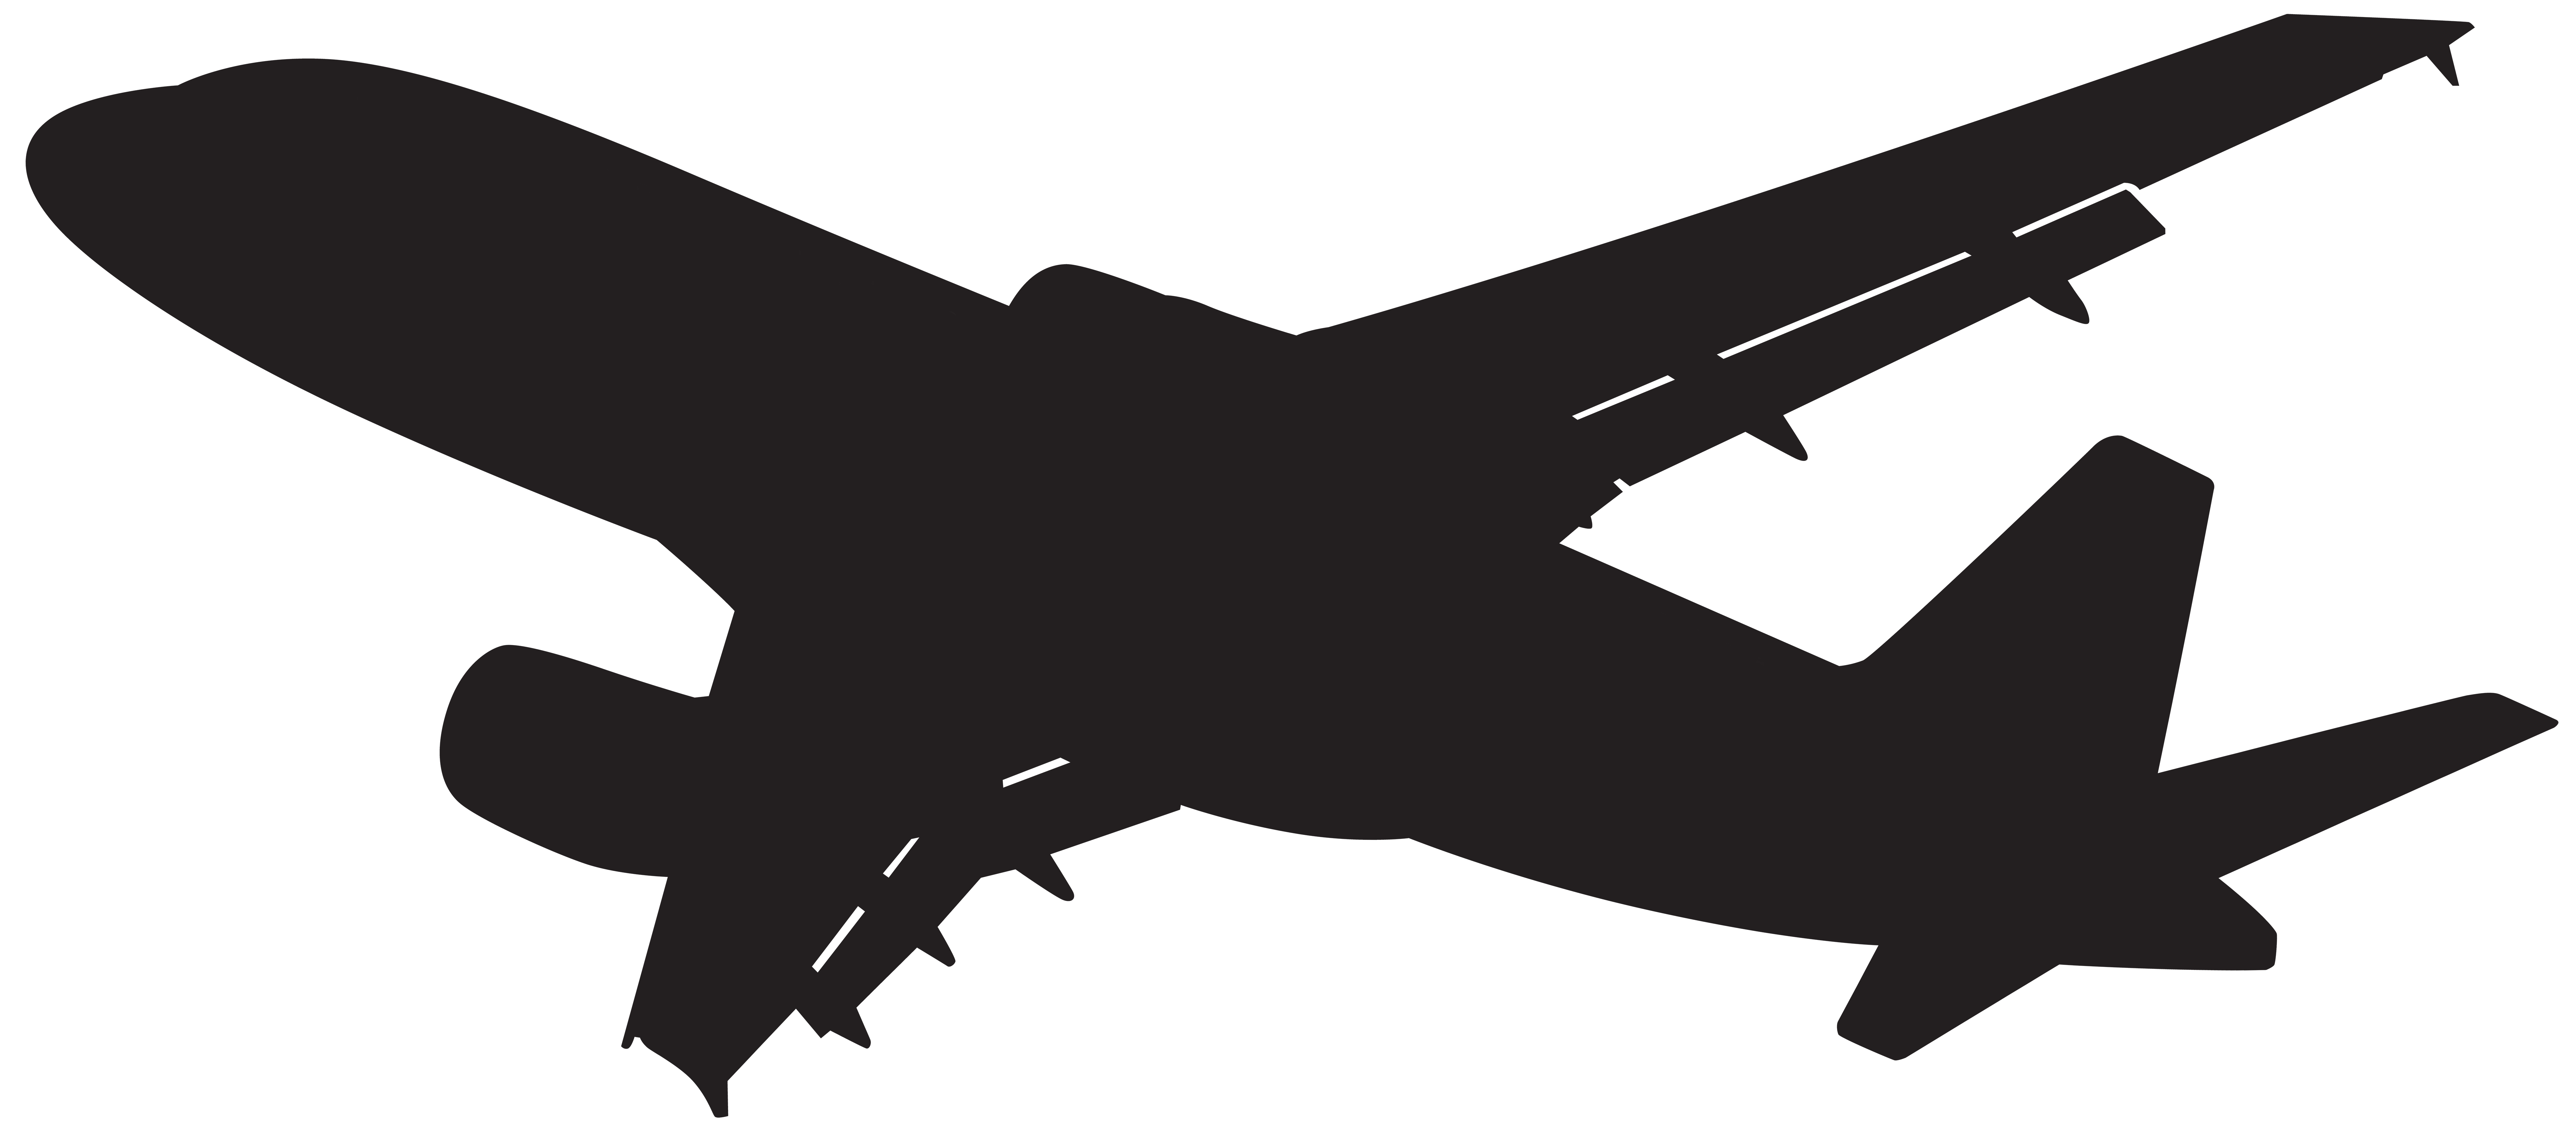 Plane clipart silhouette. Png clip art gallery